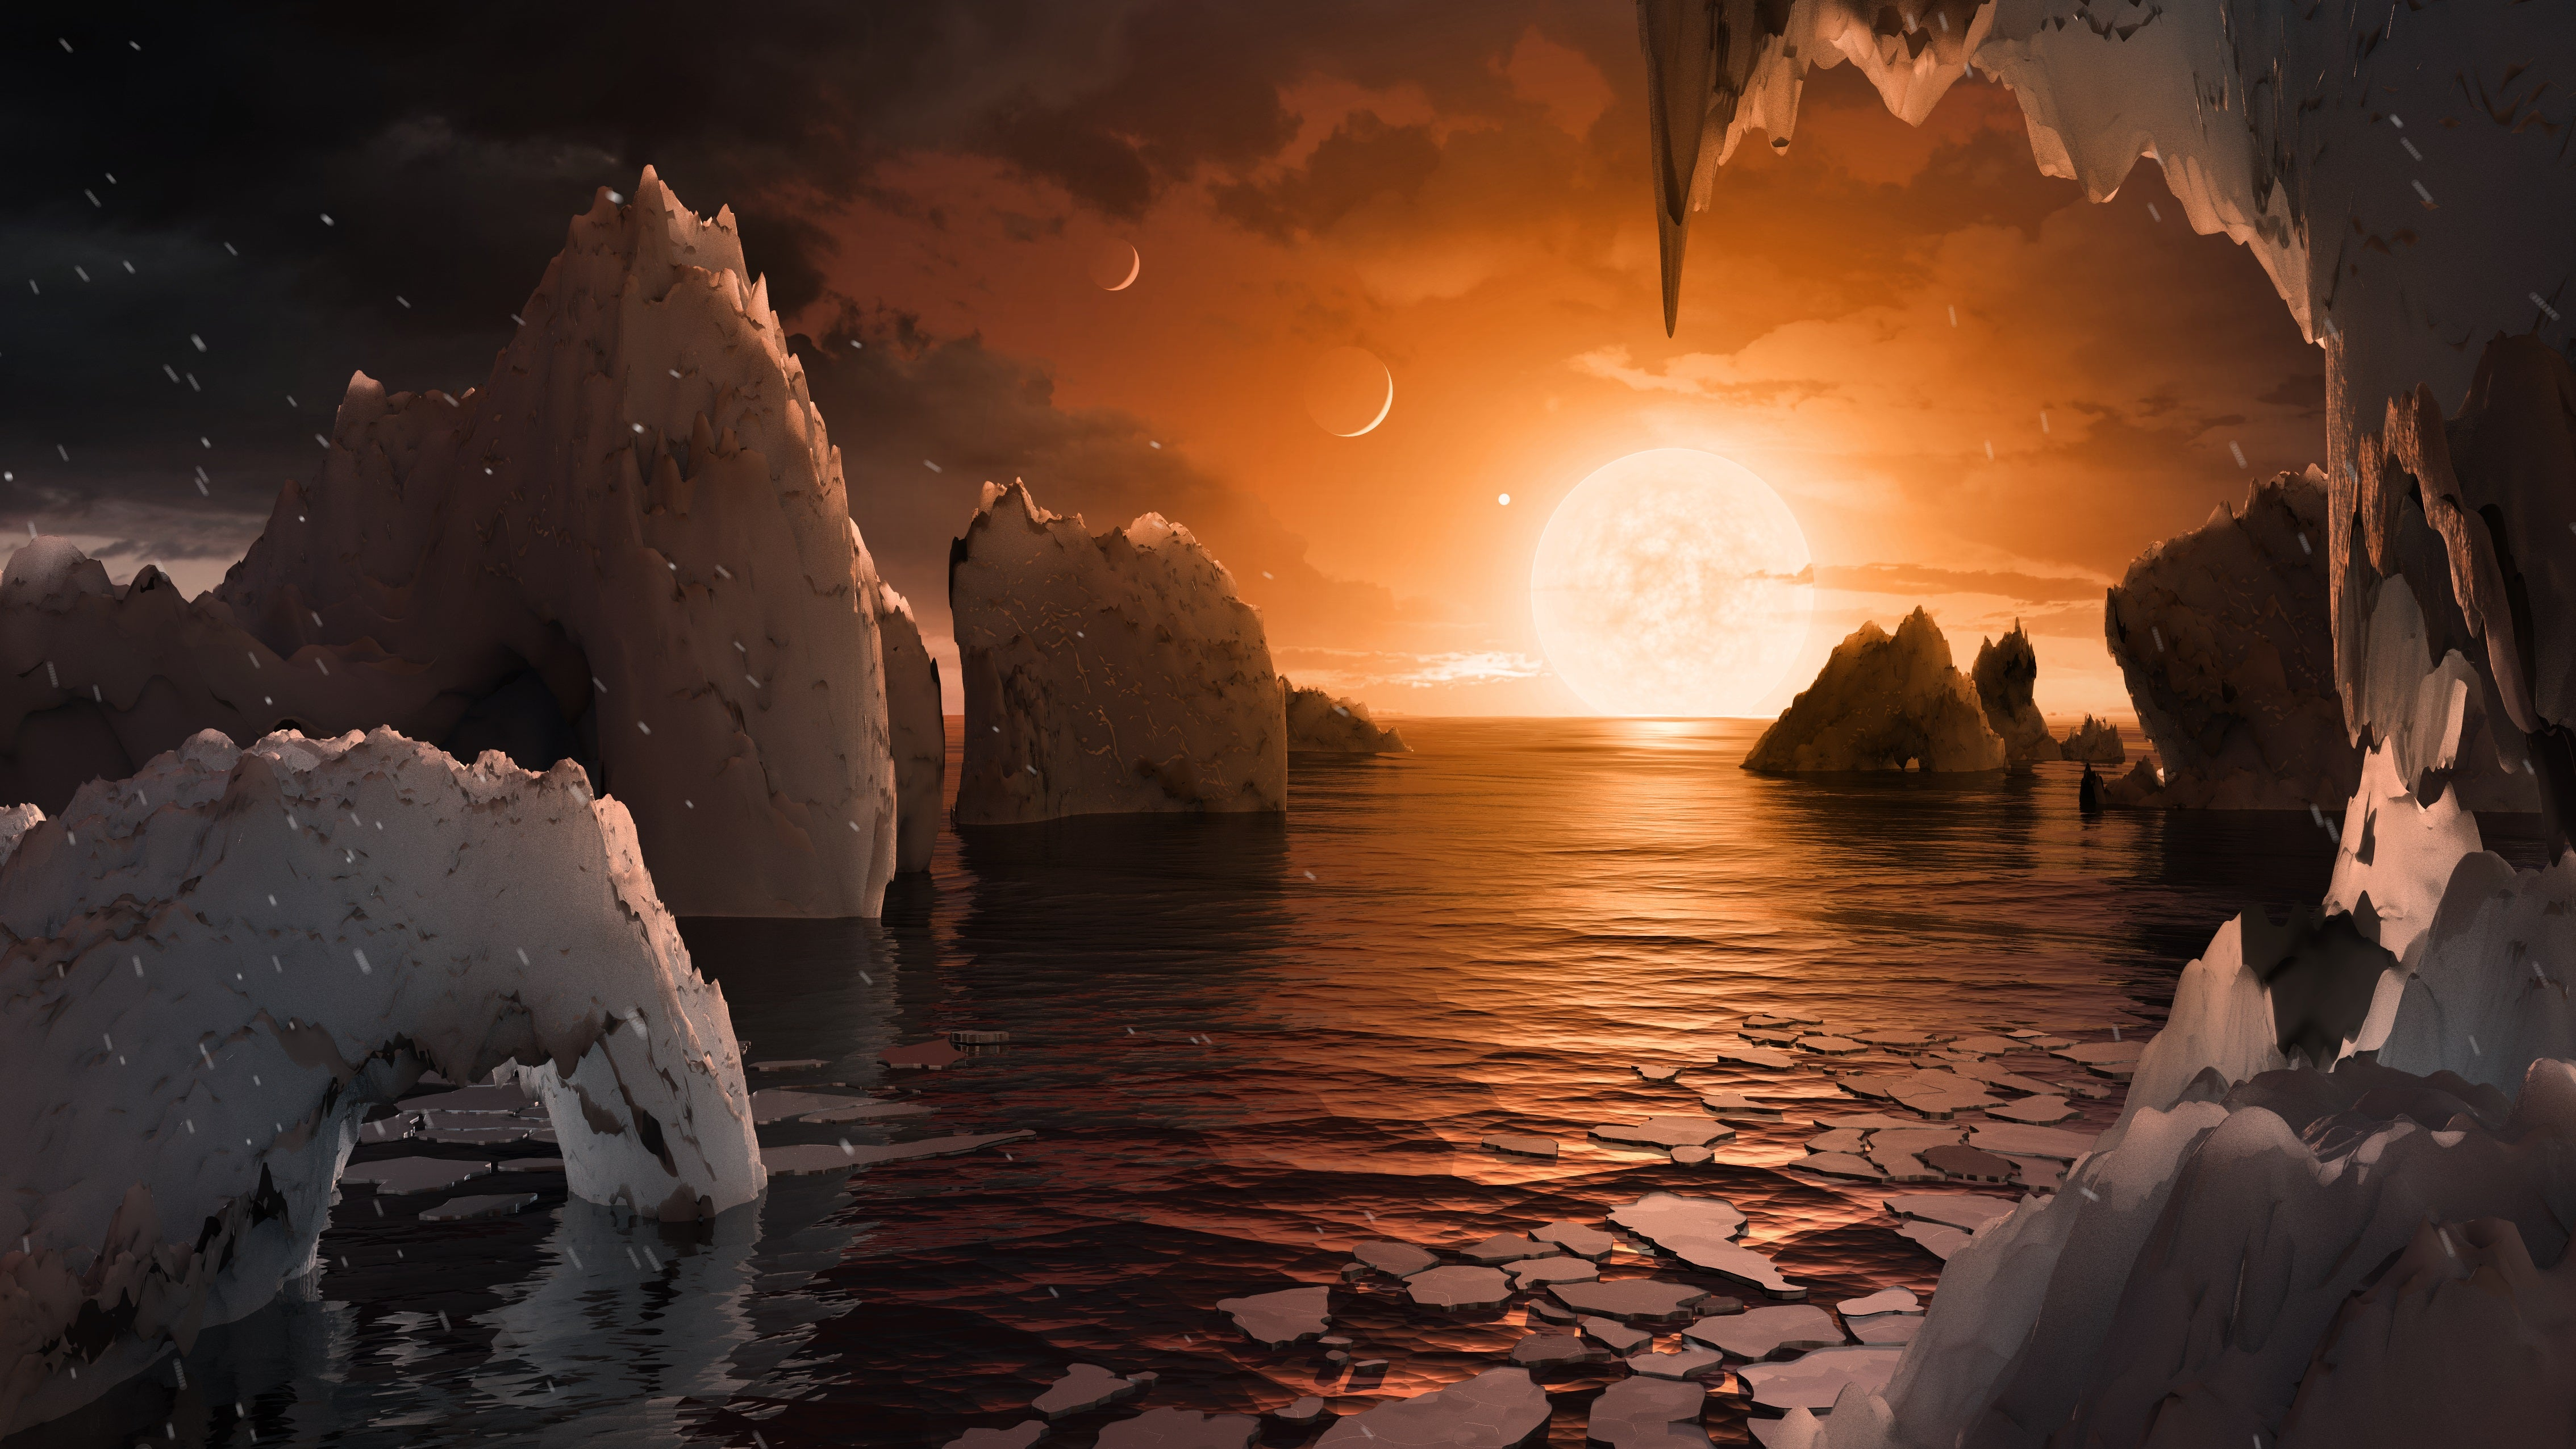 NASA Found Seven Earth-Sized Planets That May Support Life